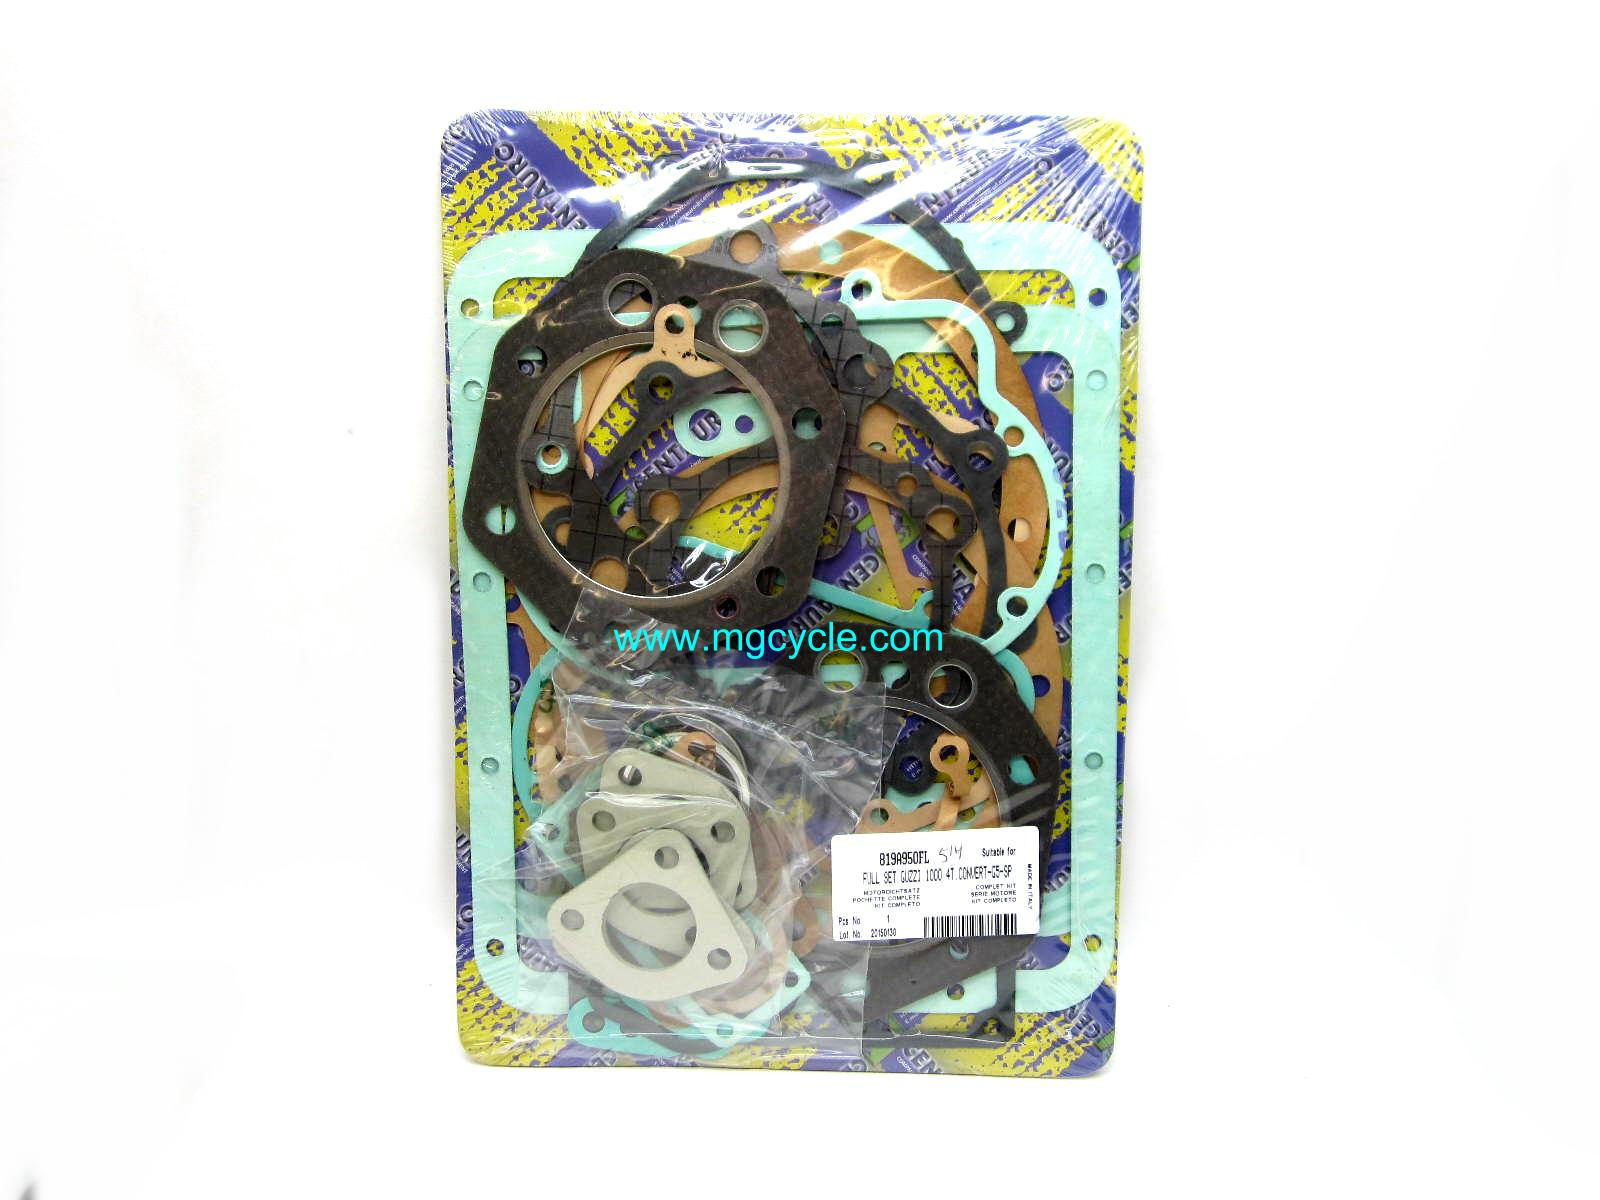 CLEARANCE Gasket set SP, G5, Convert, CX complete, 88mm round